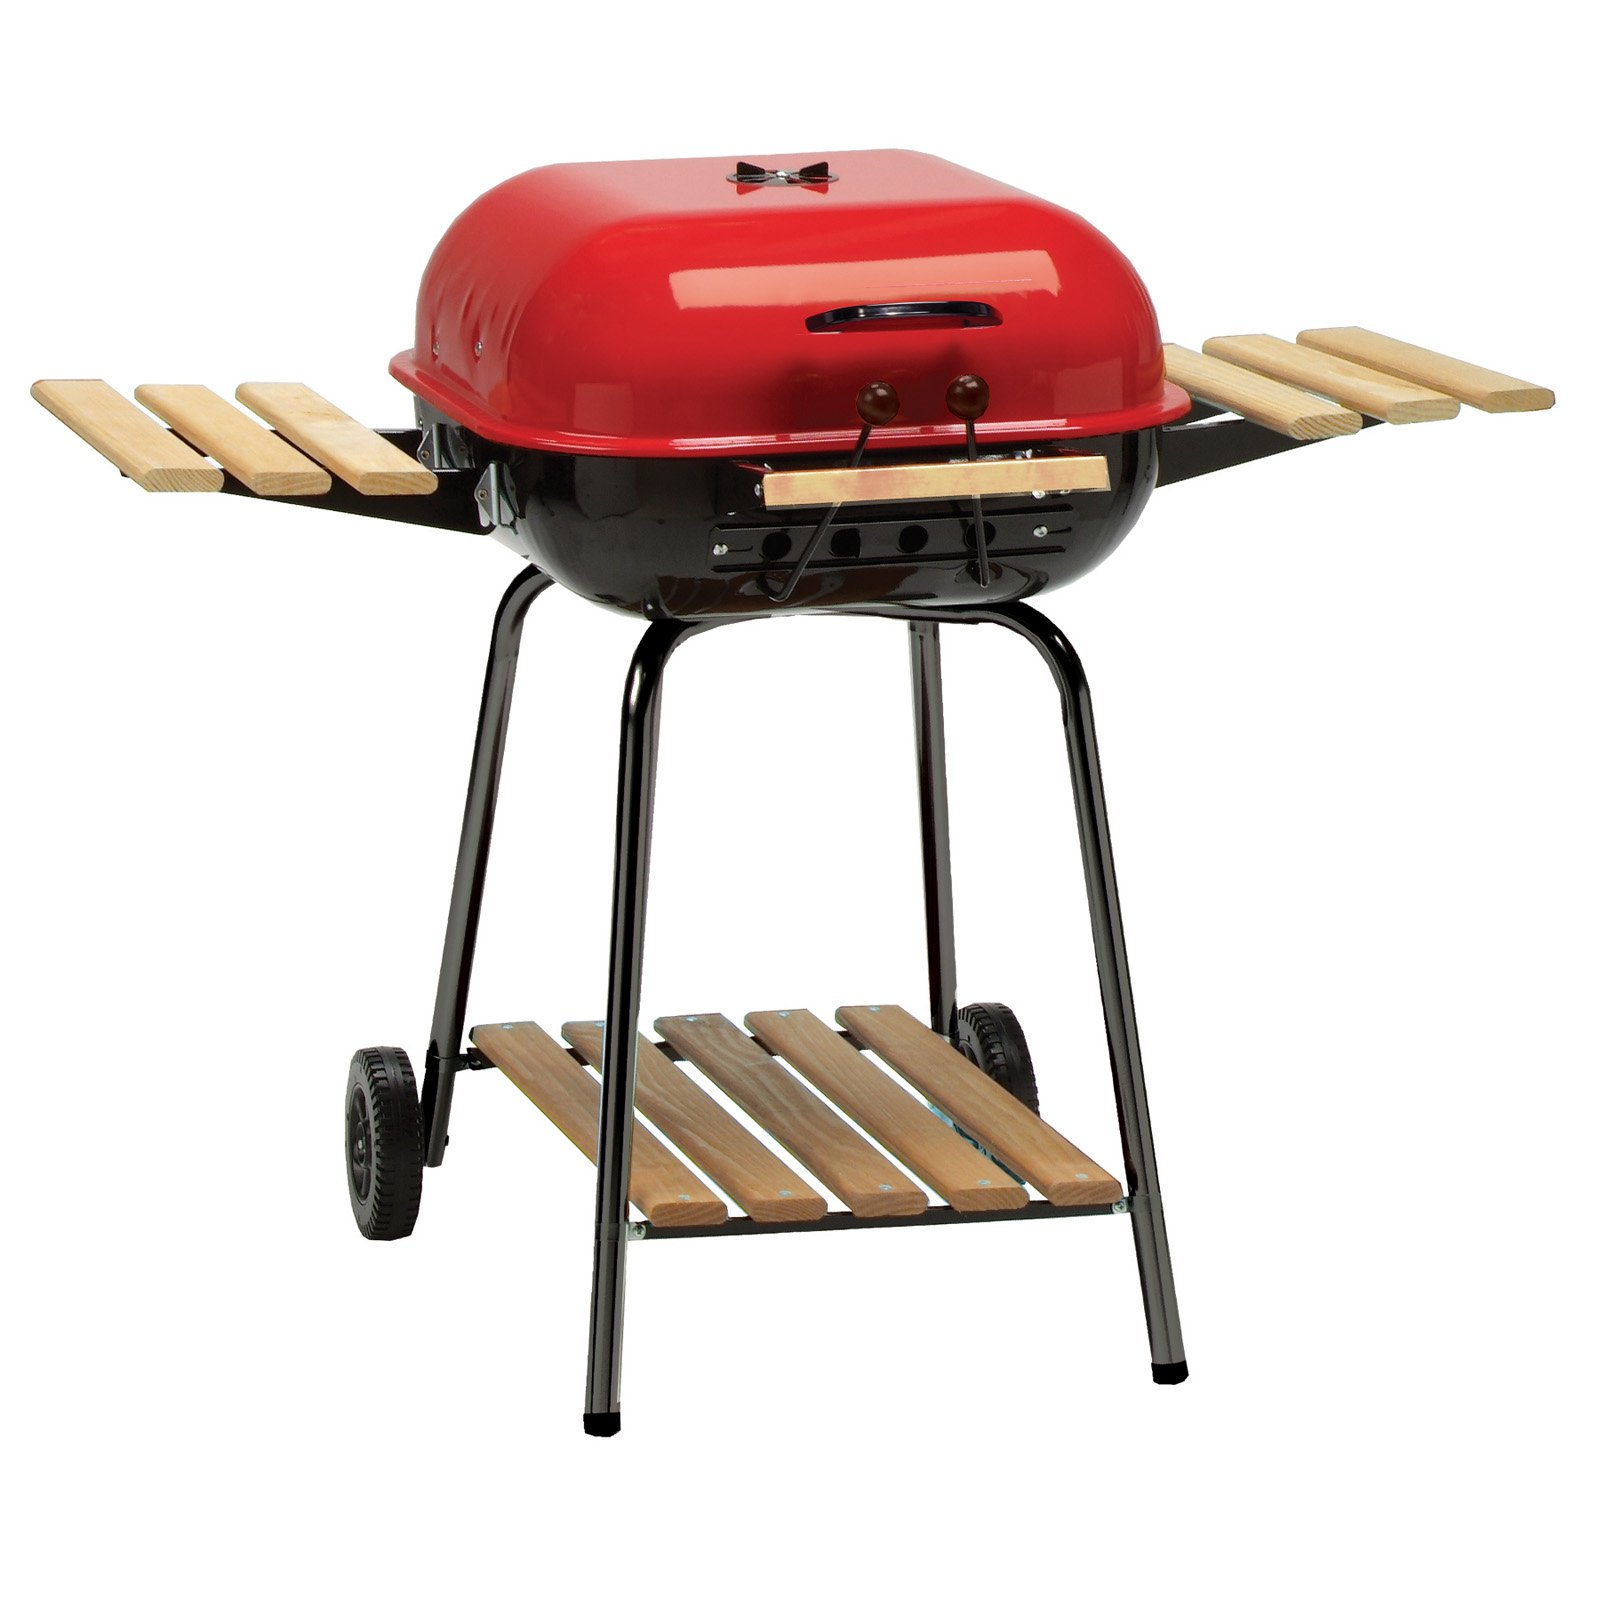 Meco Americana 21-inch, Charcoal BBQ Grill, with Adjustable Cooking Grate, Composite-Wood Folding Side Tables (2) and Lower Shelf, Red